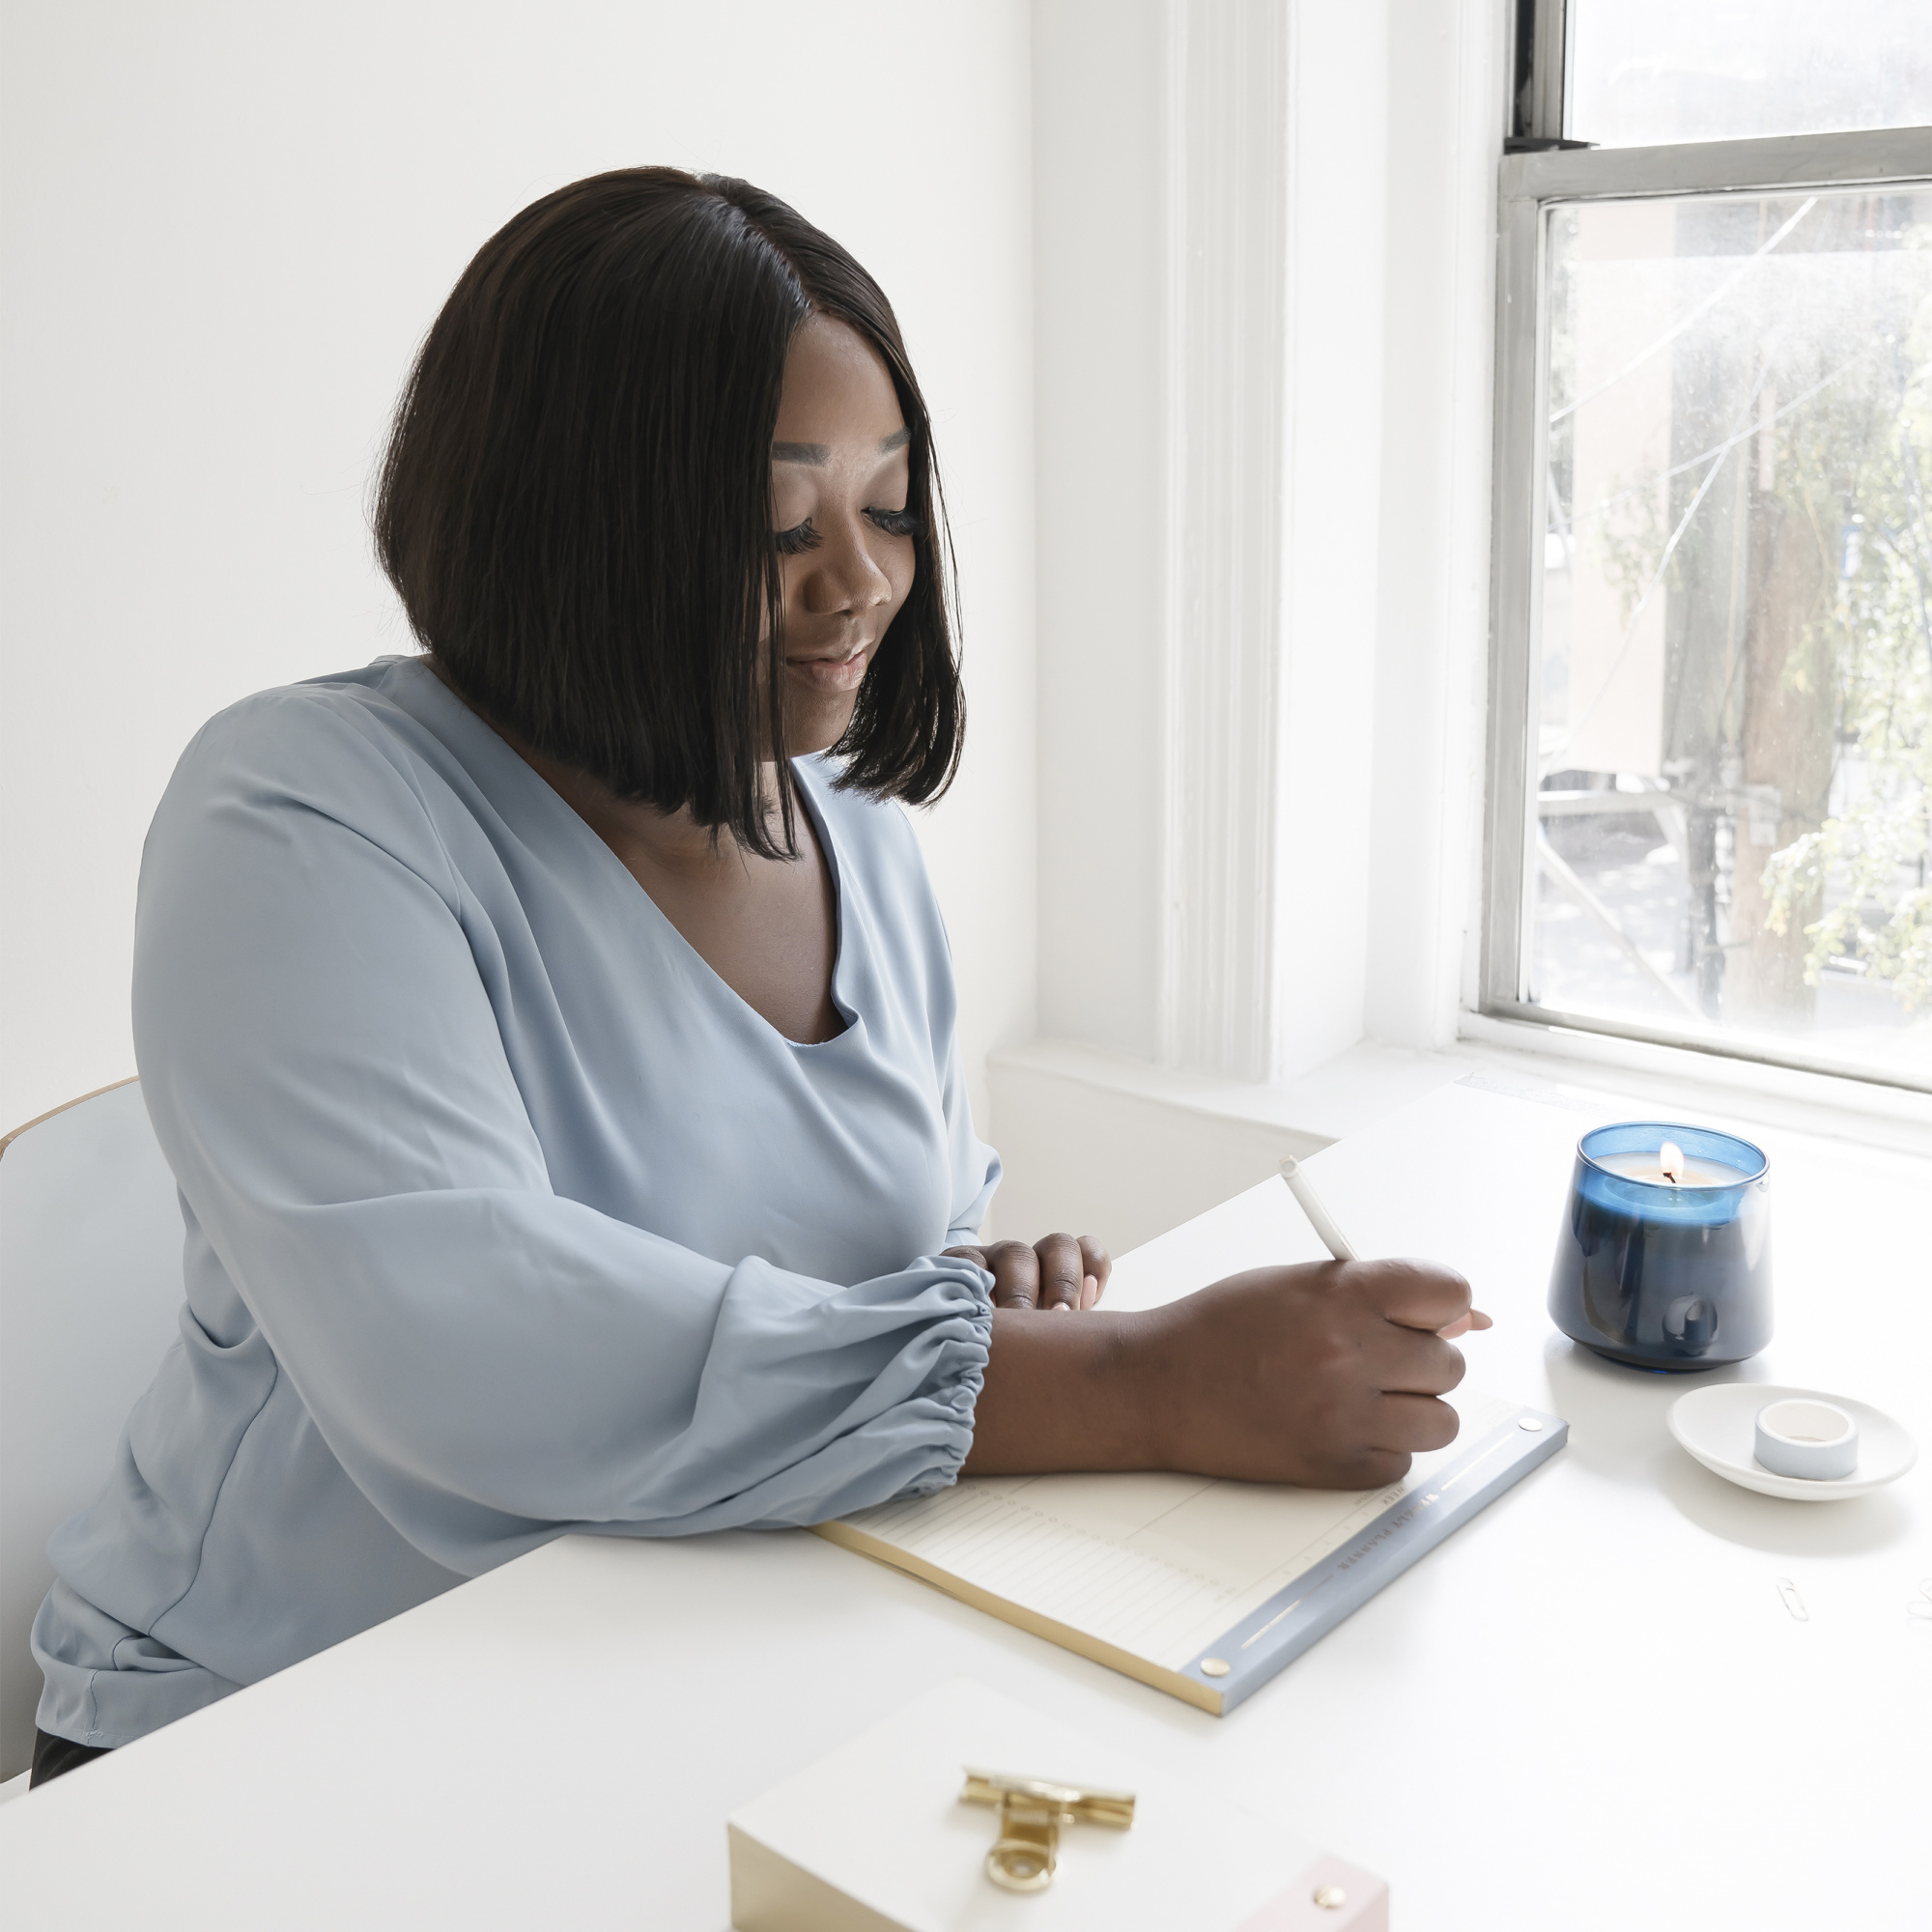 common menopause questions, Black woman with chin-length hair in blue blouse writing